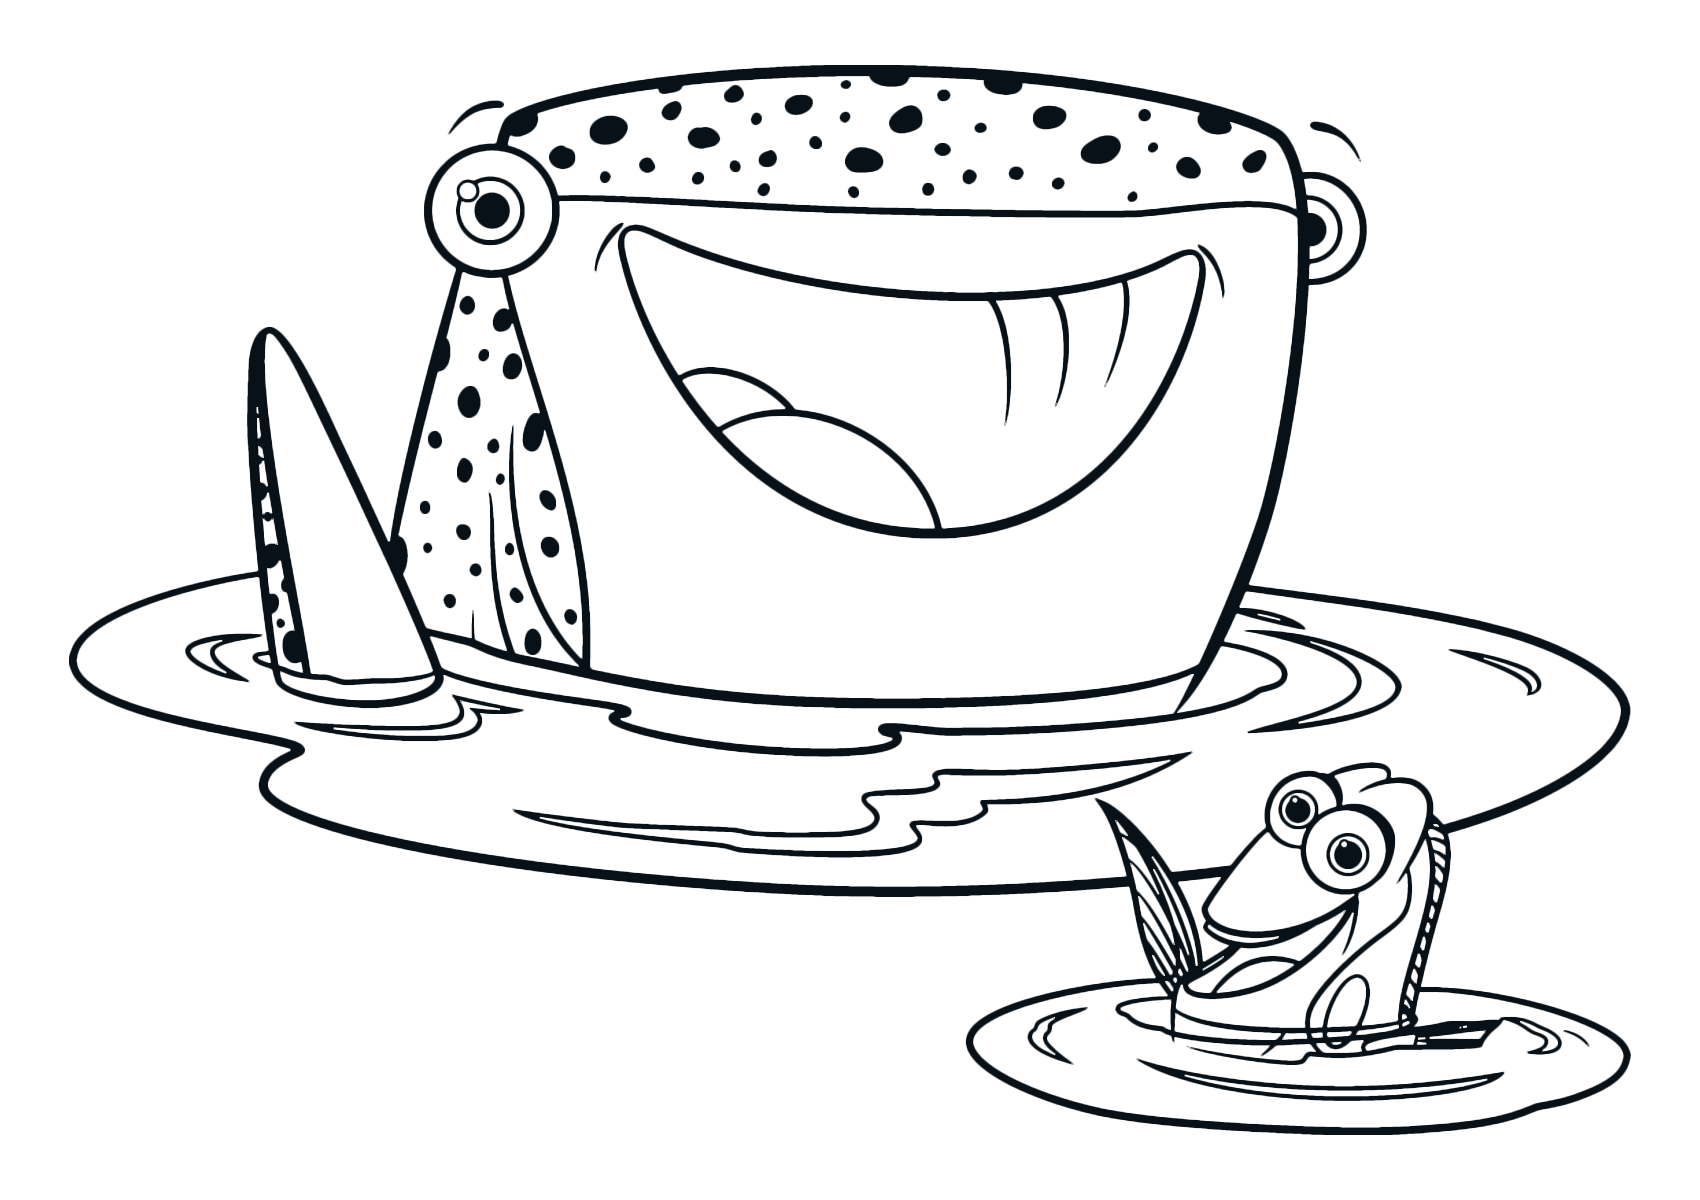 Coloring pages for dory - The Regal Blue Tang Dory And The Whale Shark Destiny Greet